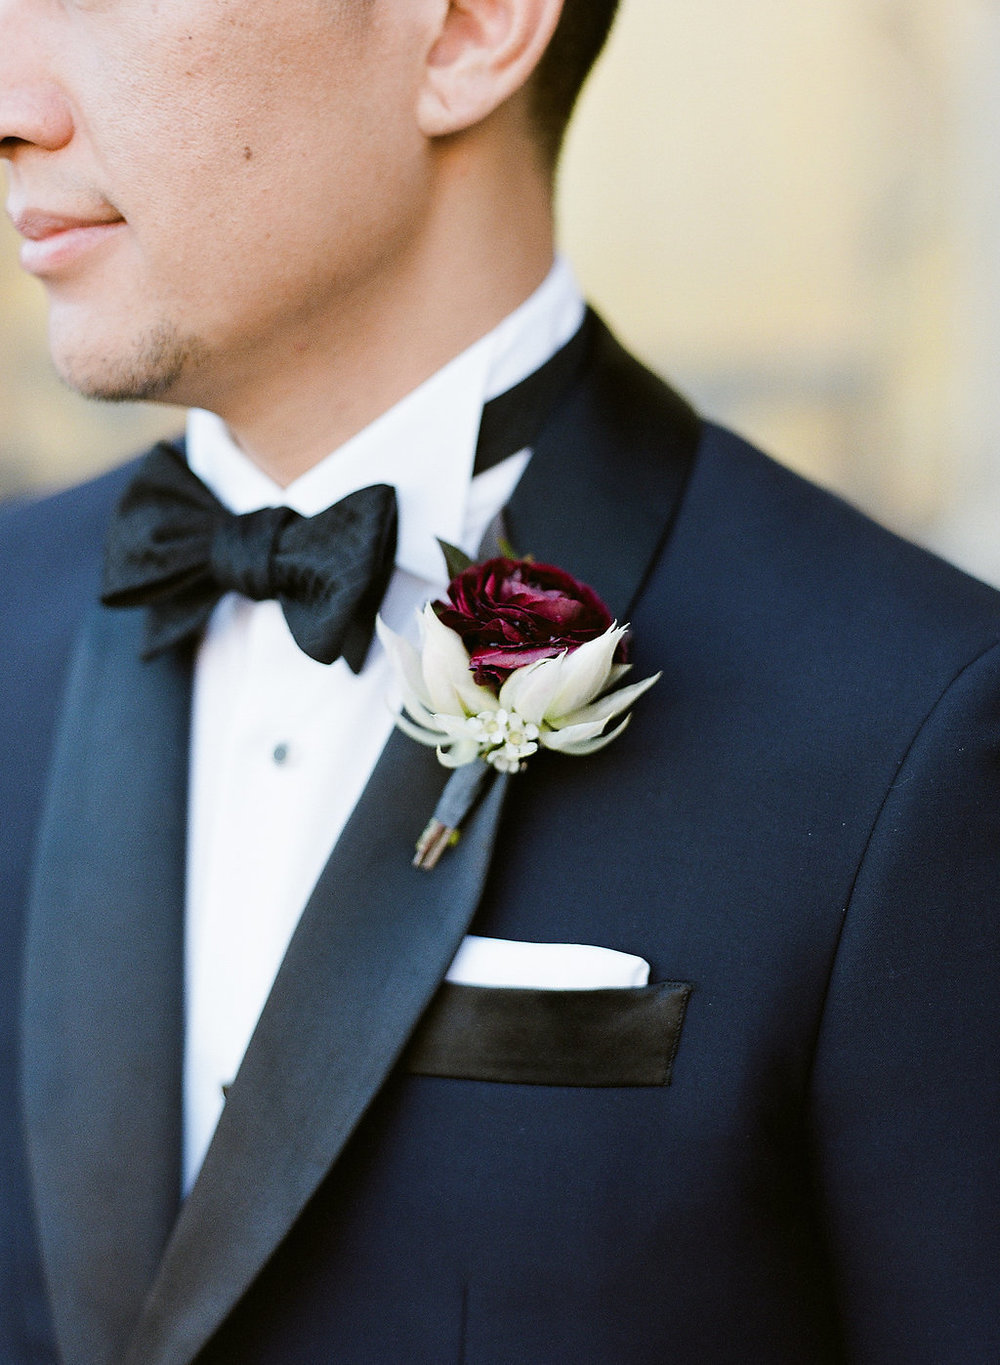 groom-boutonniere-JennySoiPhotography.jpg